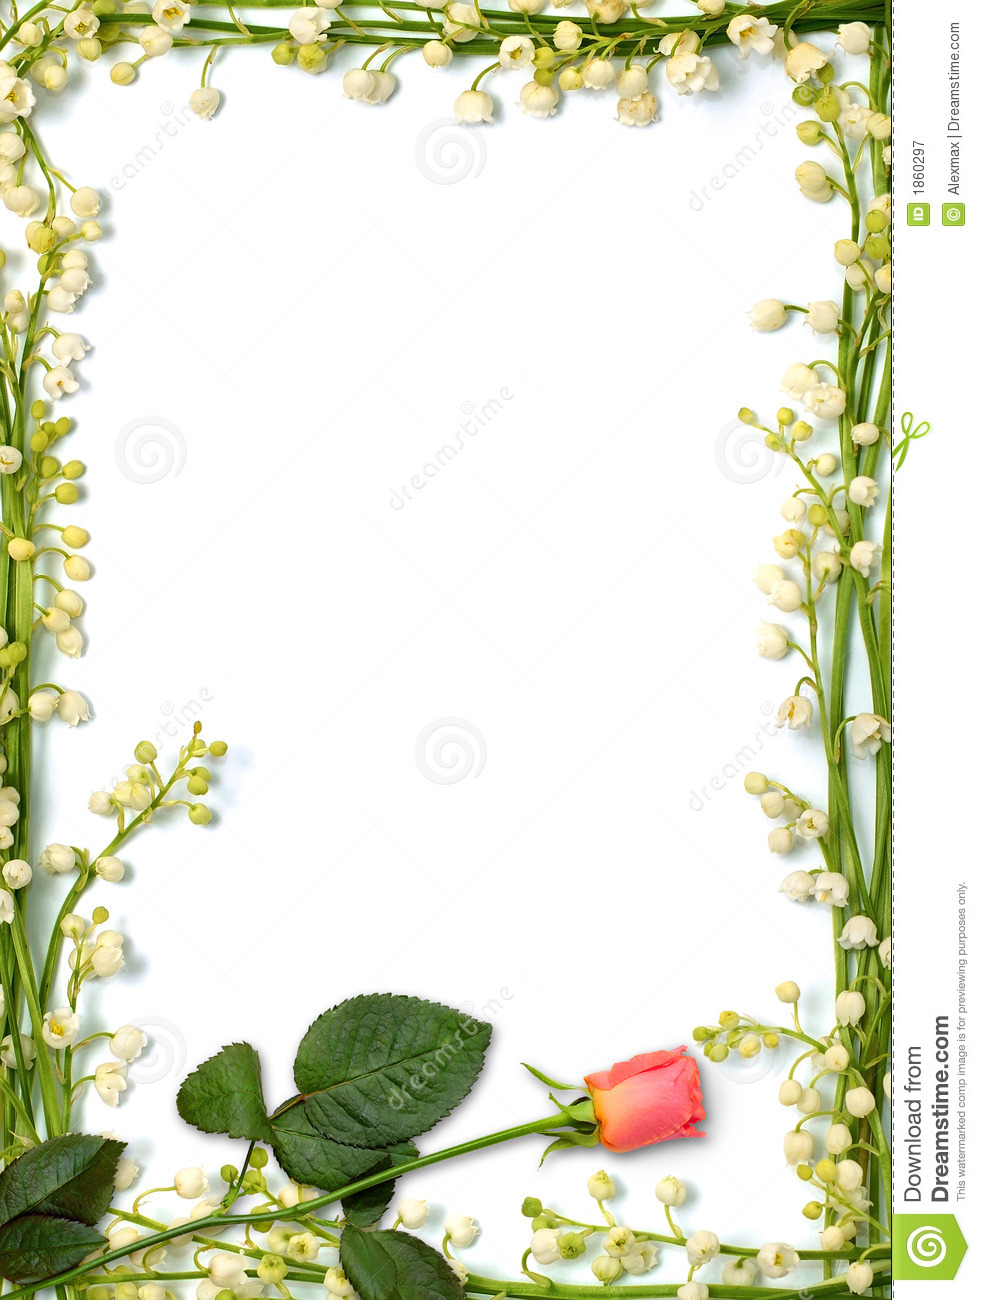 Love Letter Wallpaper Design : Love letter background stock image. Image of lilies, letter - 1860297